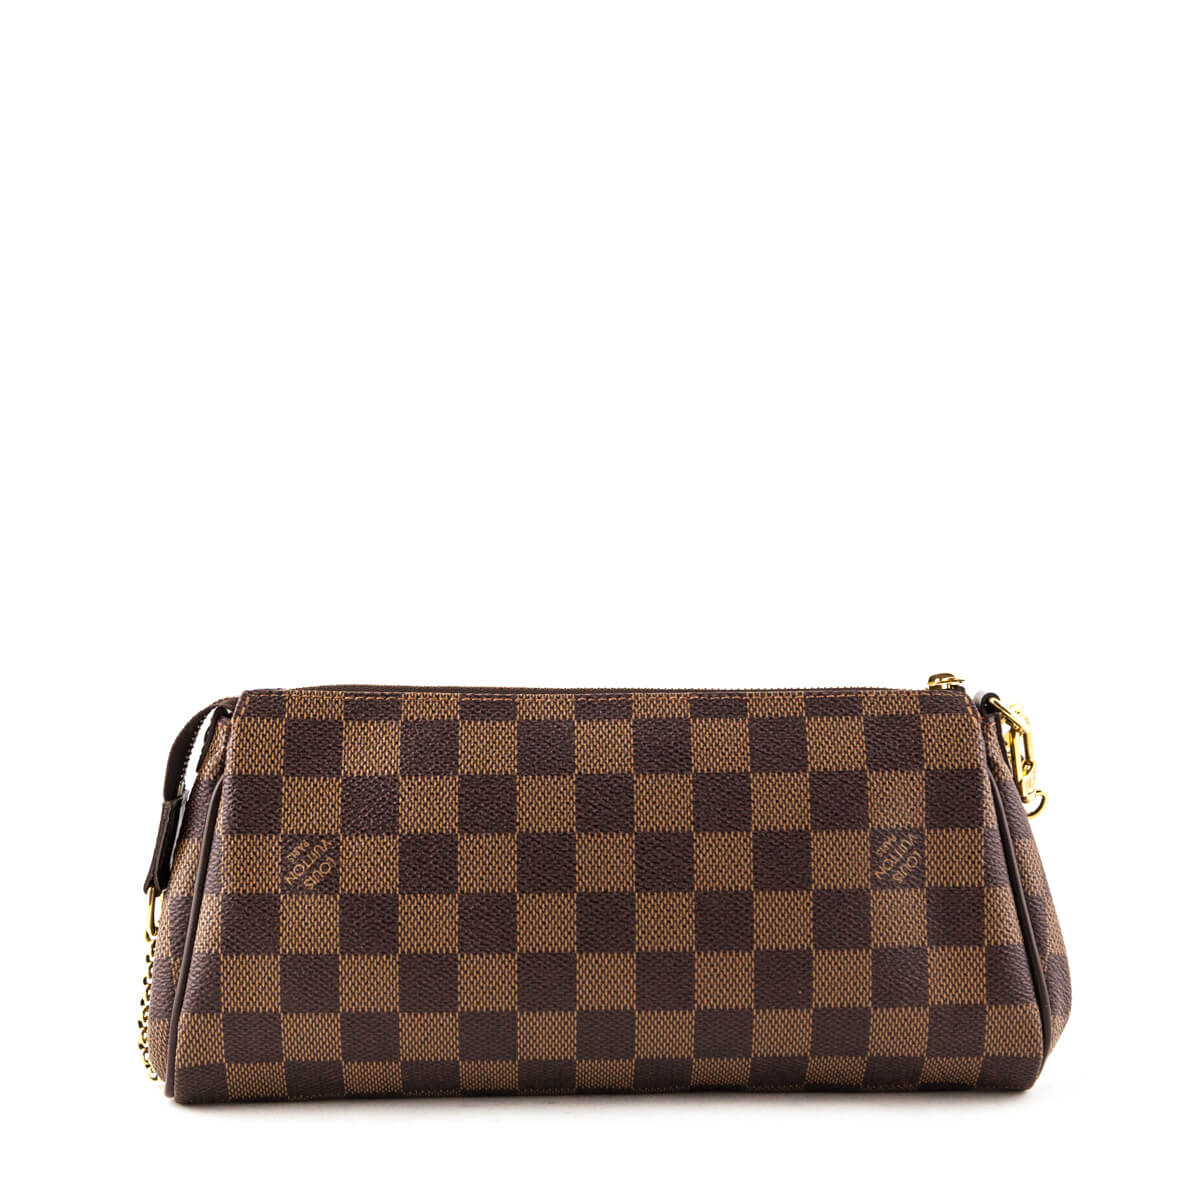 1c3d5be150bf ... Louis Vuitton Damier Ebene Eva Clutch - LOVE that BAG - Preowned  Authentic Designer Handbags ...